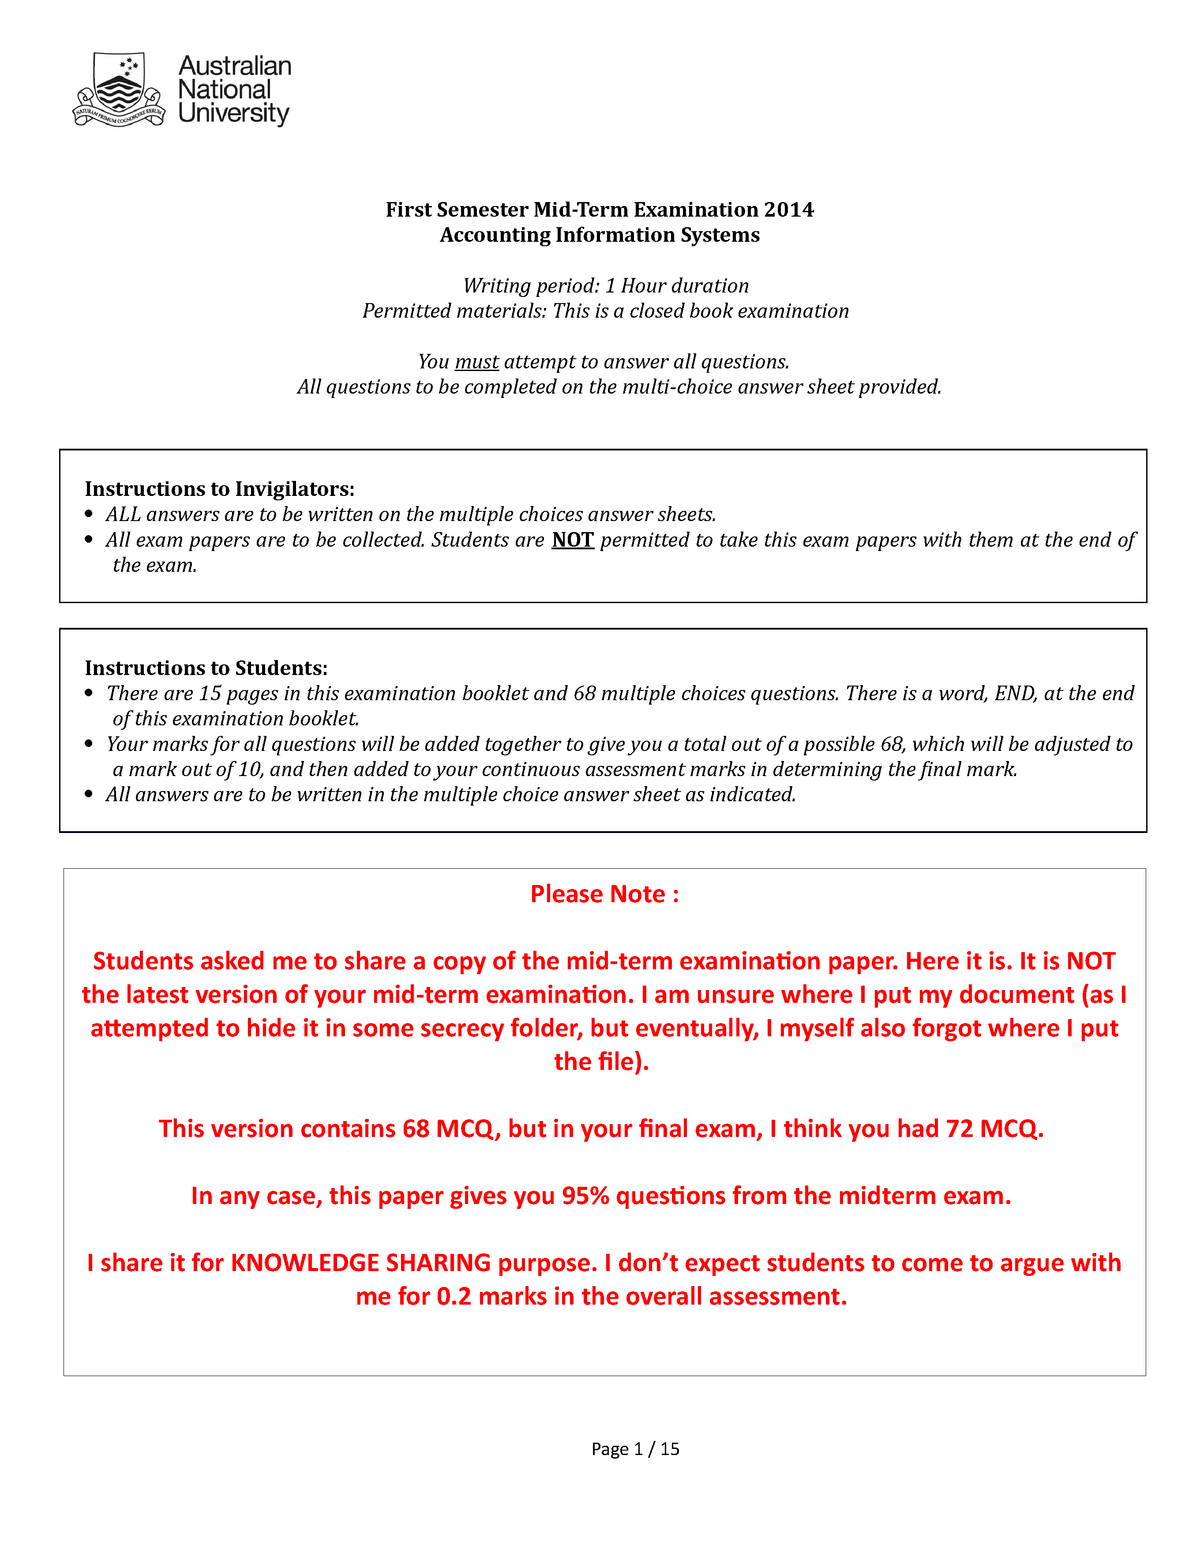 Sample/practice exam 2015, questions and answers - Mid-term